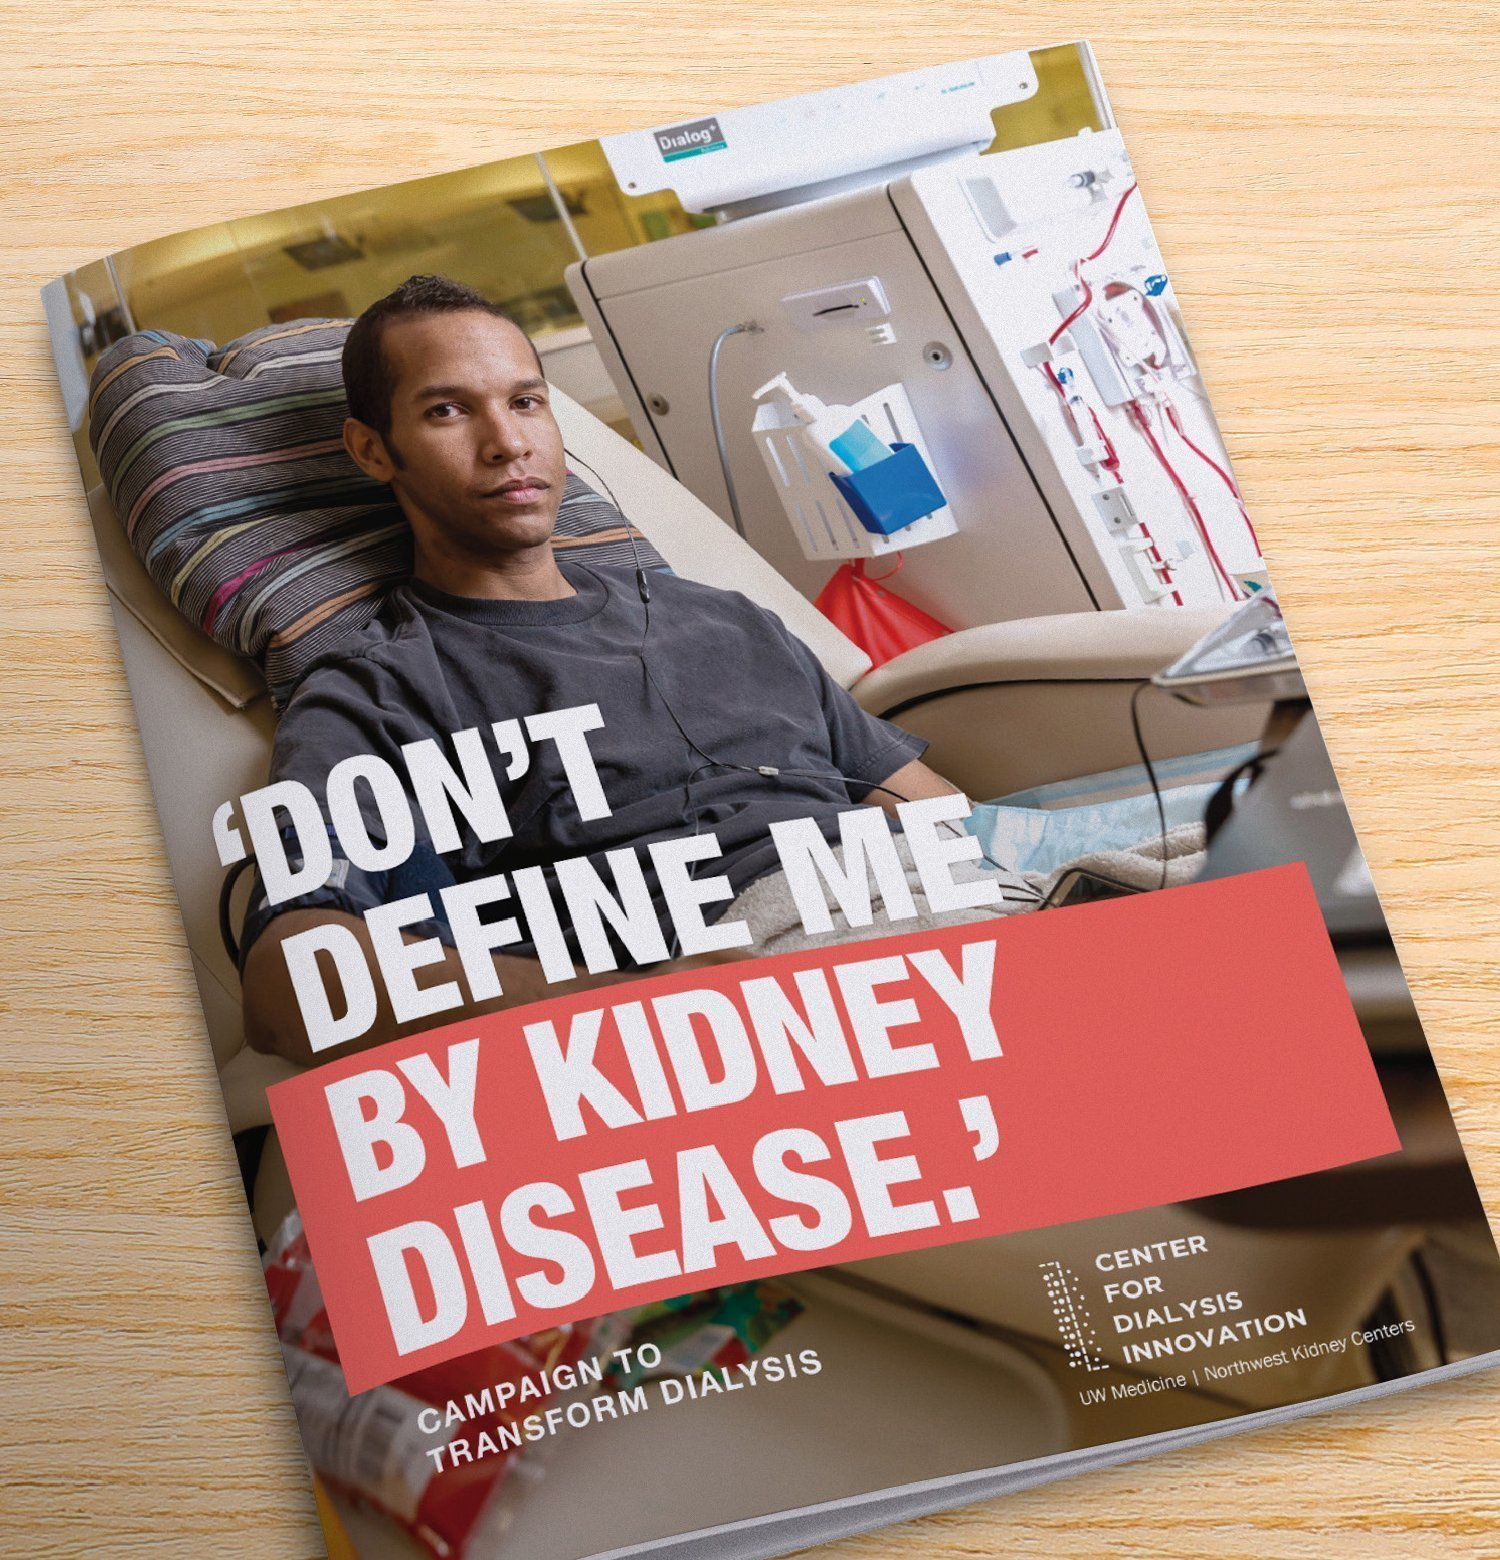 Magazine cover related to kidney disease.